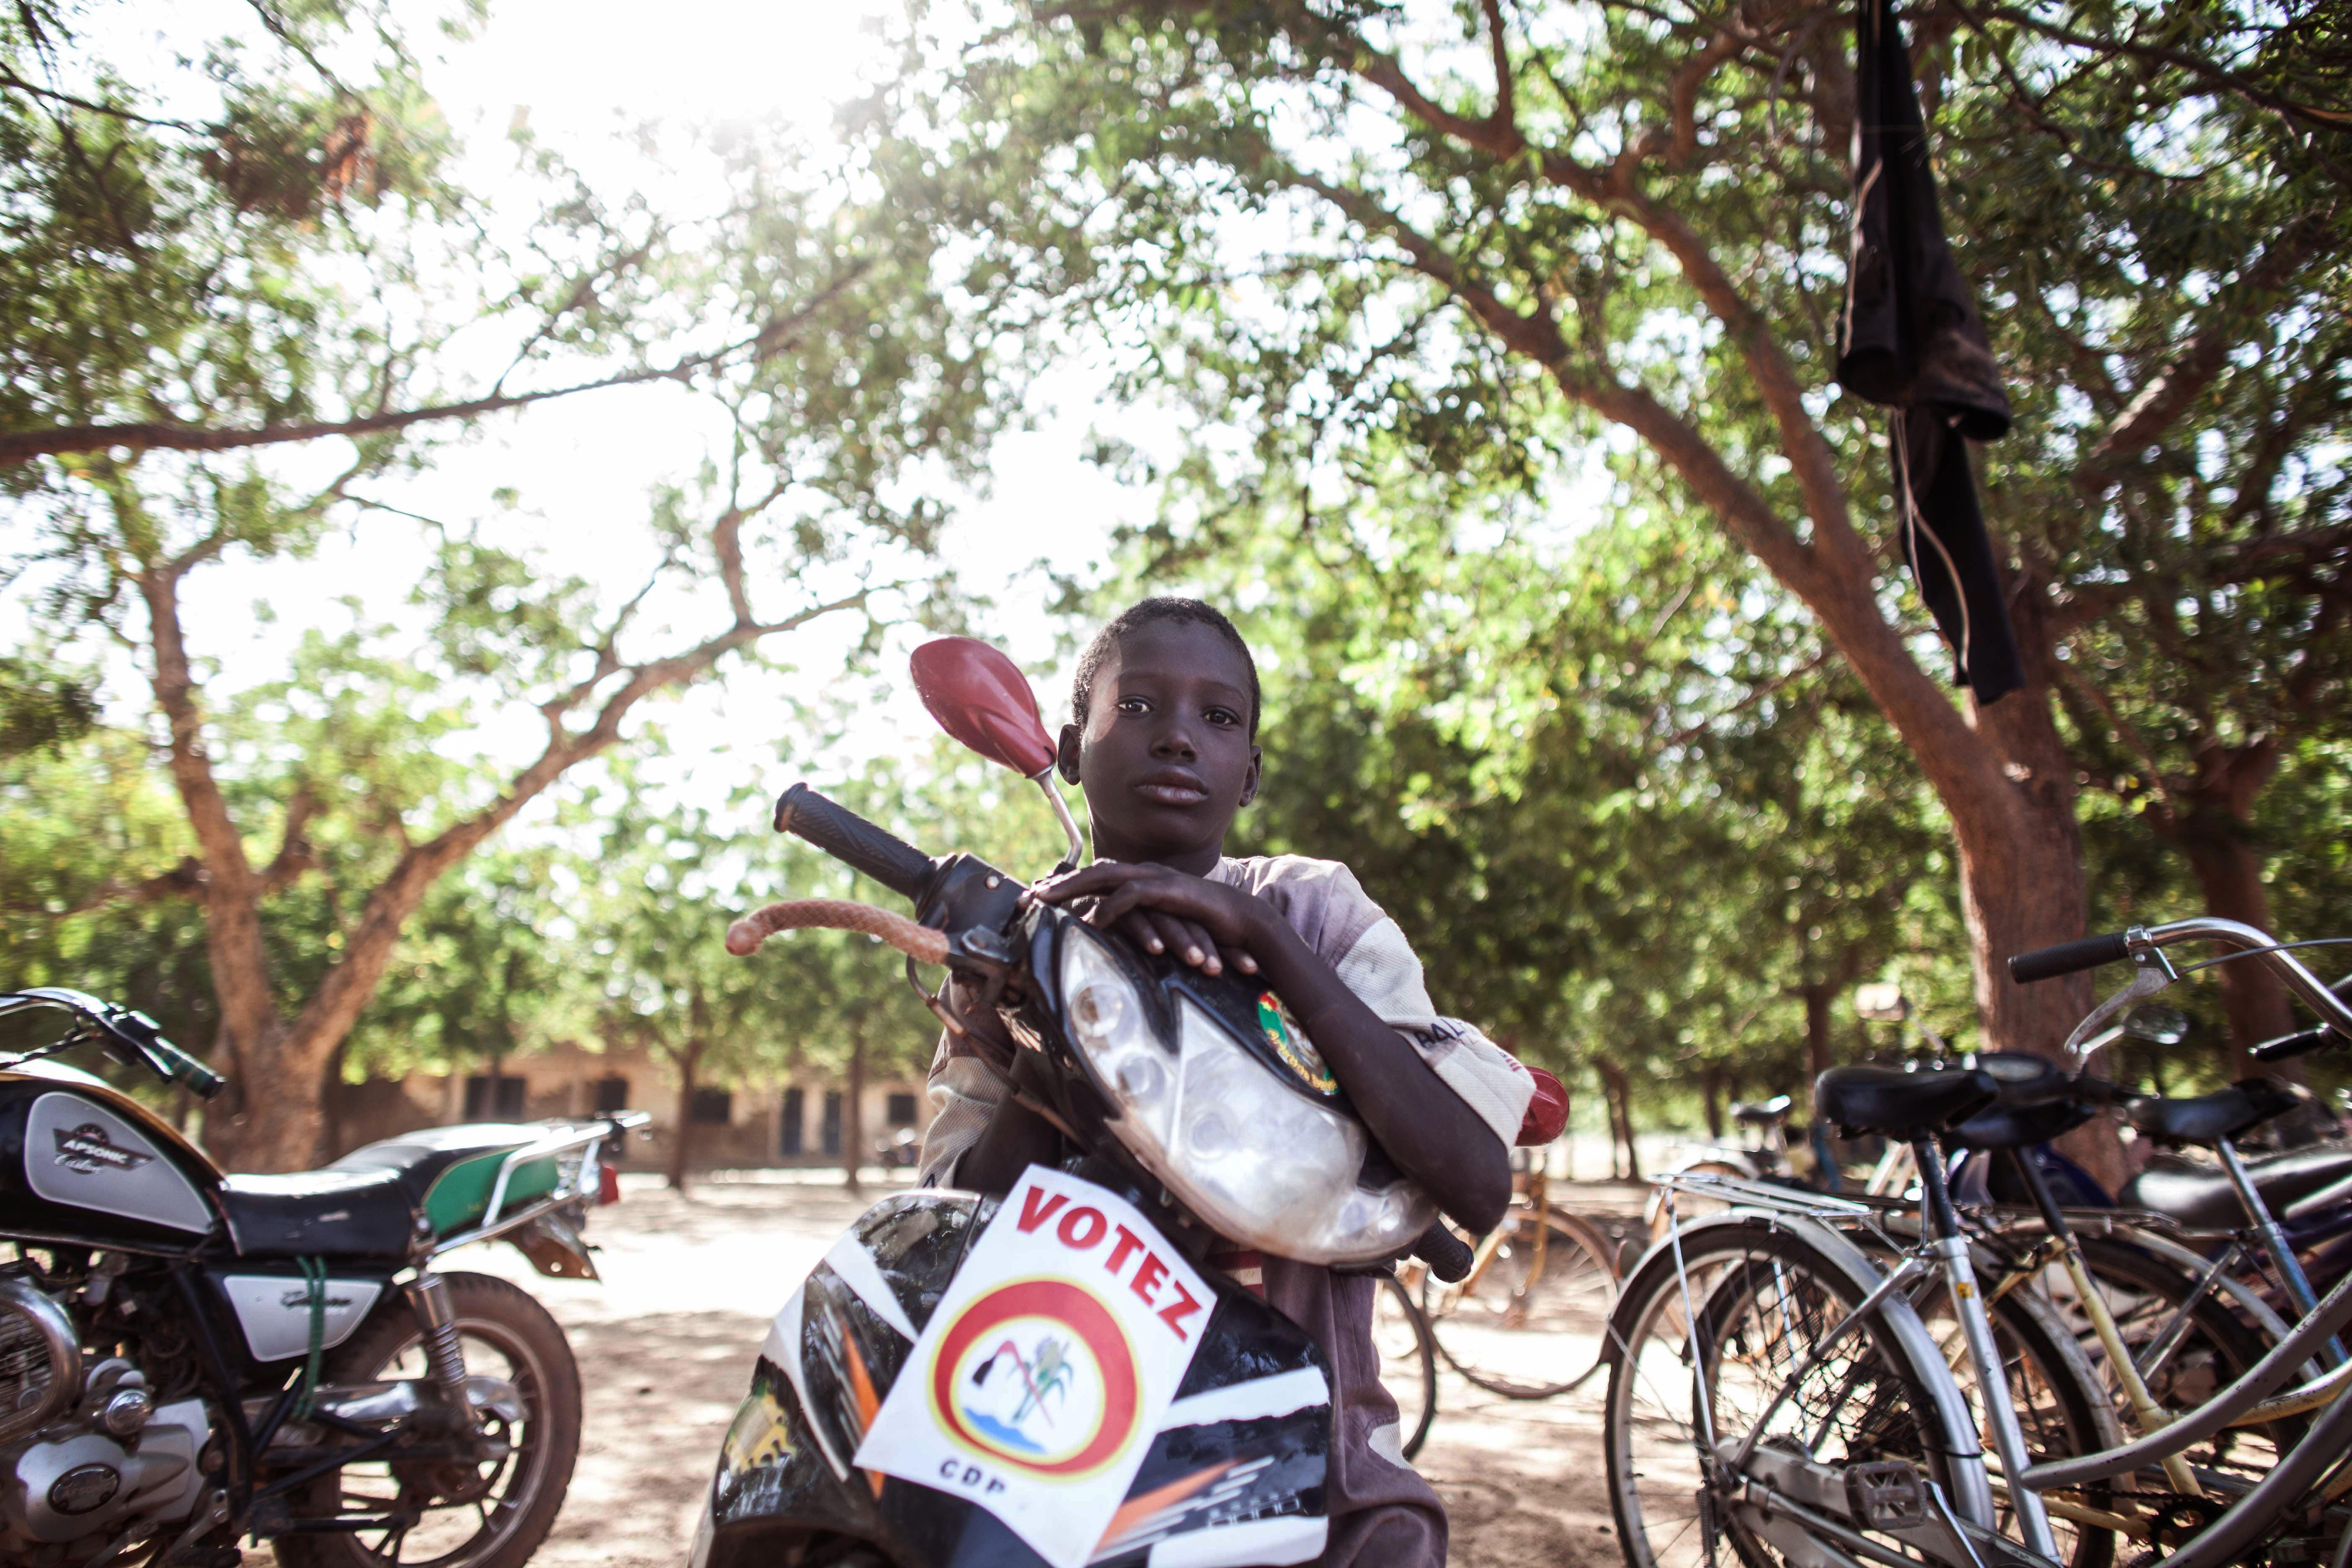 Burkina Faso ex-leader's hometown adapts to life without him